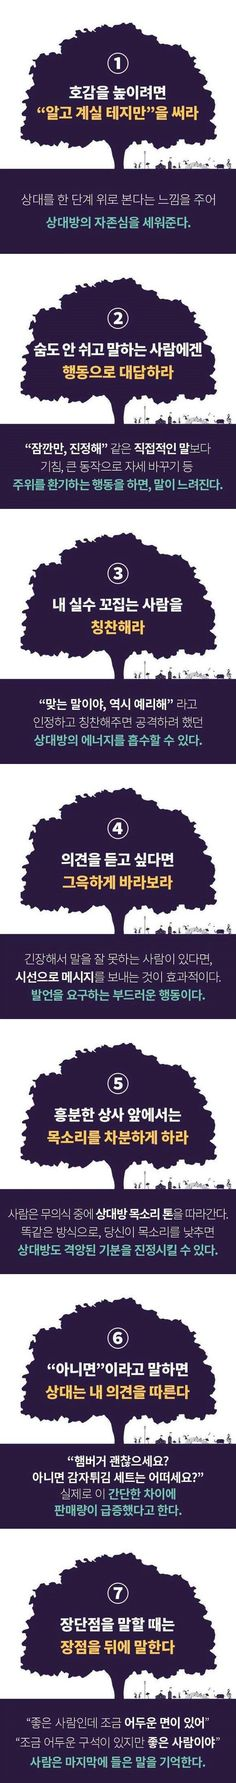 가생이닷컴>유머엽기 > 유머게시판 > 대화의 방법 Life Skills, Life Lessons, Wise Quotes, Inspirational Quotes, Be Like Meme, Life Words, Survival Life, Better Life, Cool Words